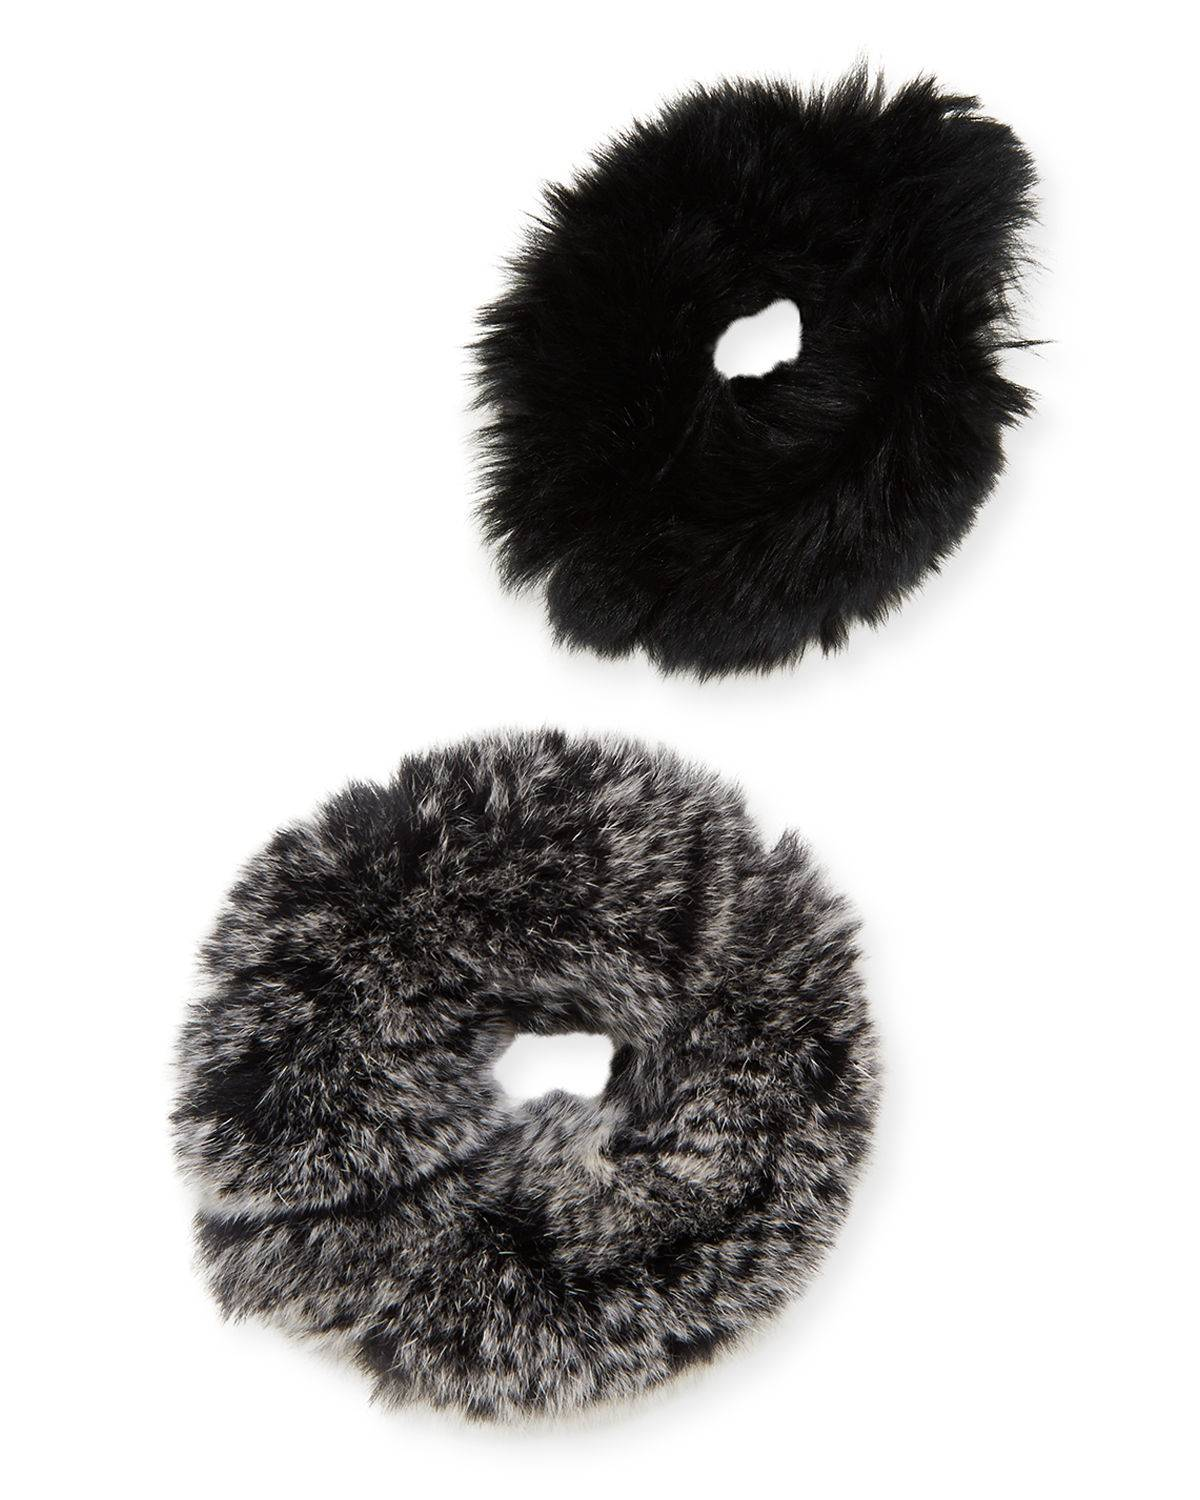 Surell Accessories Rabbit Fur Scrunchies, Set of 2